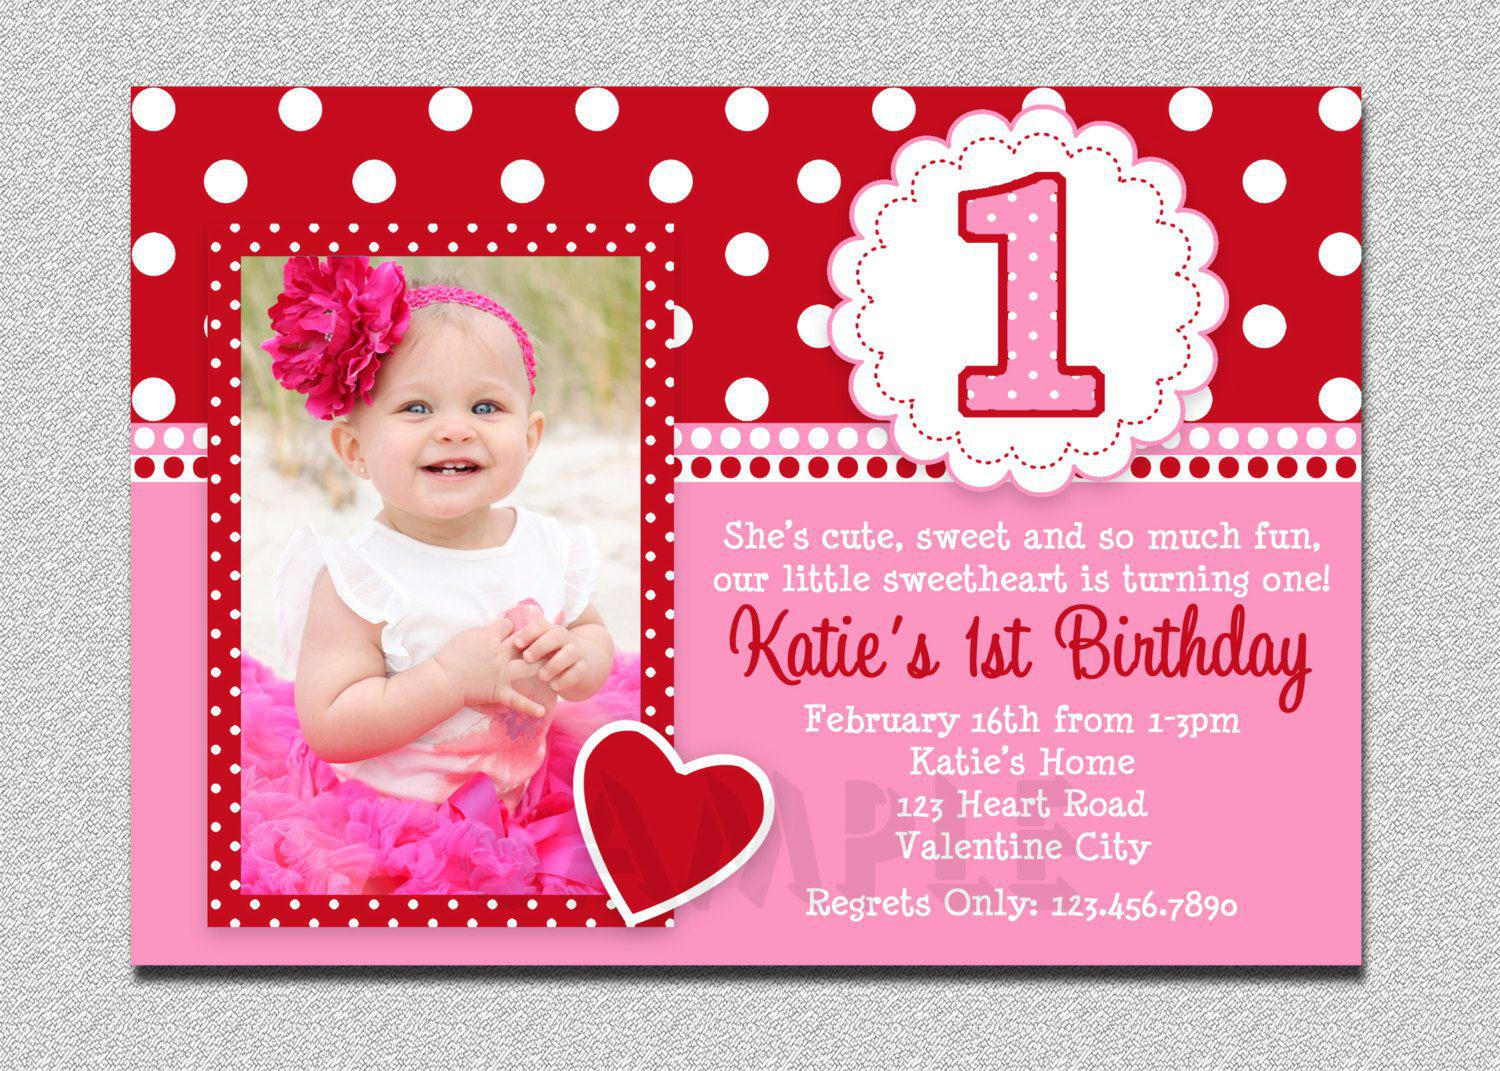 Best First Birthday Invites Printable Sample Templates - First birthday invitations girl online